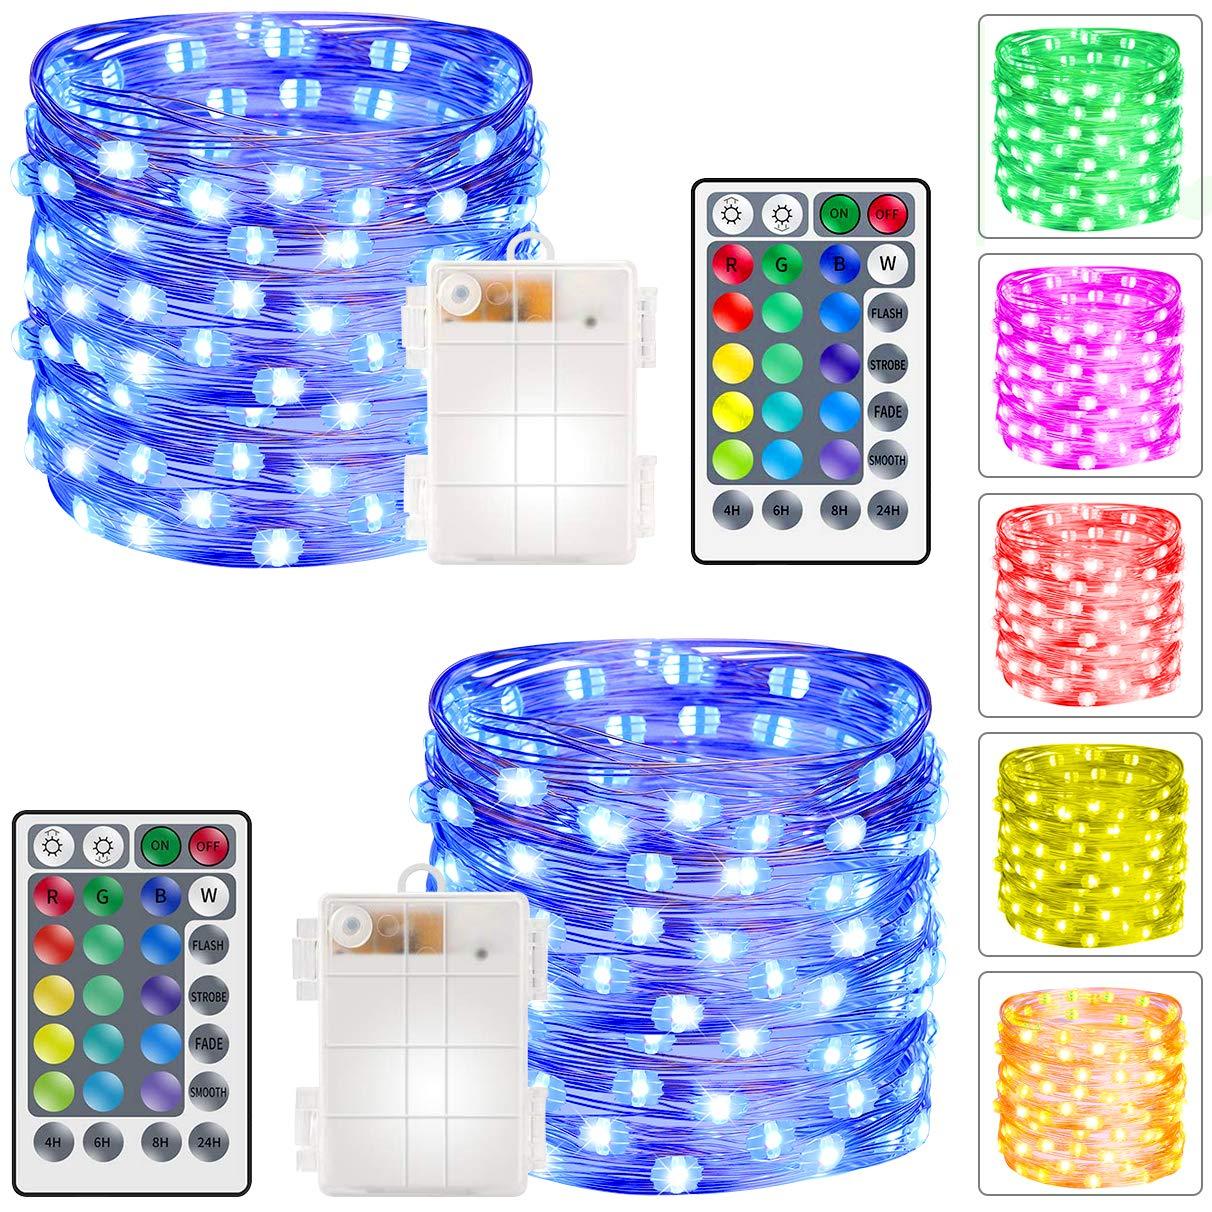 Govee 2 Set RGB Fairy String Lights Dimmable Waterproof Battery Operated 5m/16.5ft 50 LEDs for £4.95